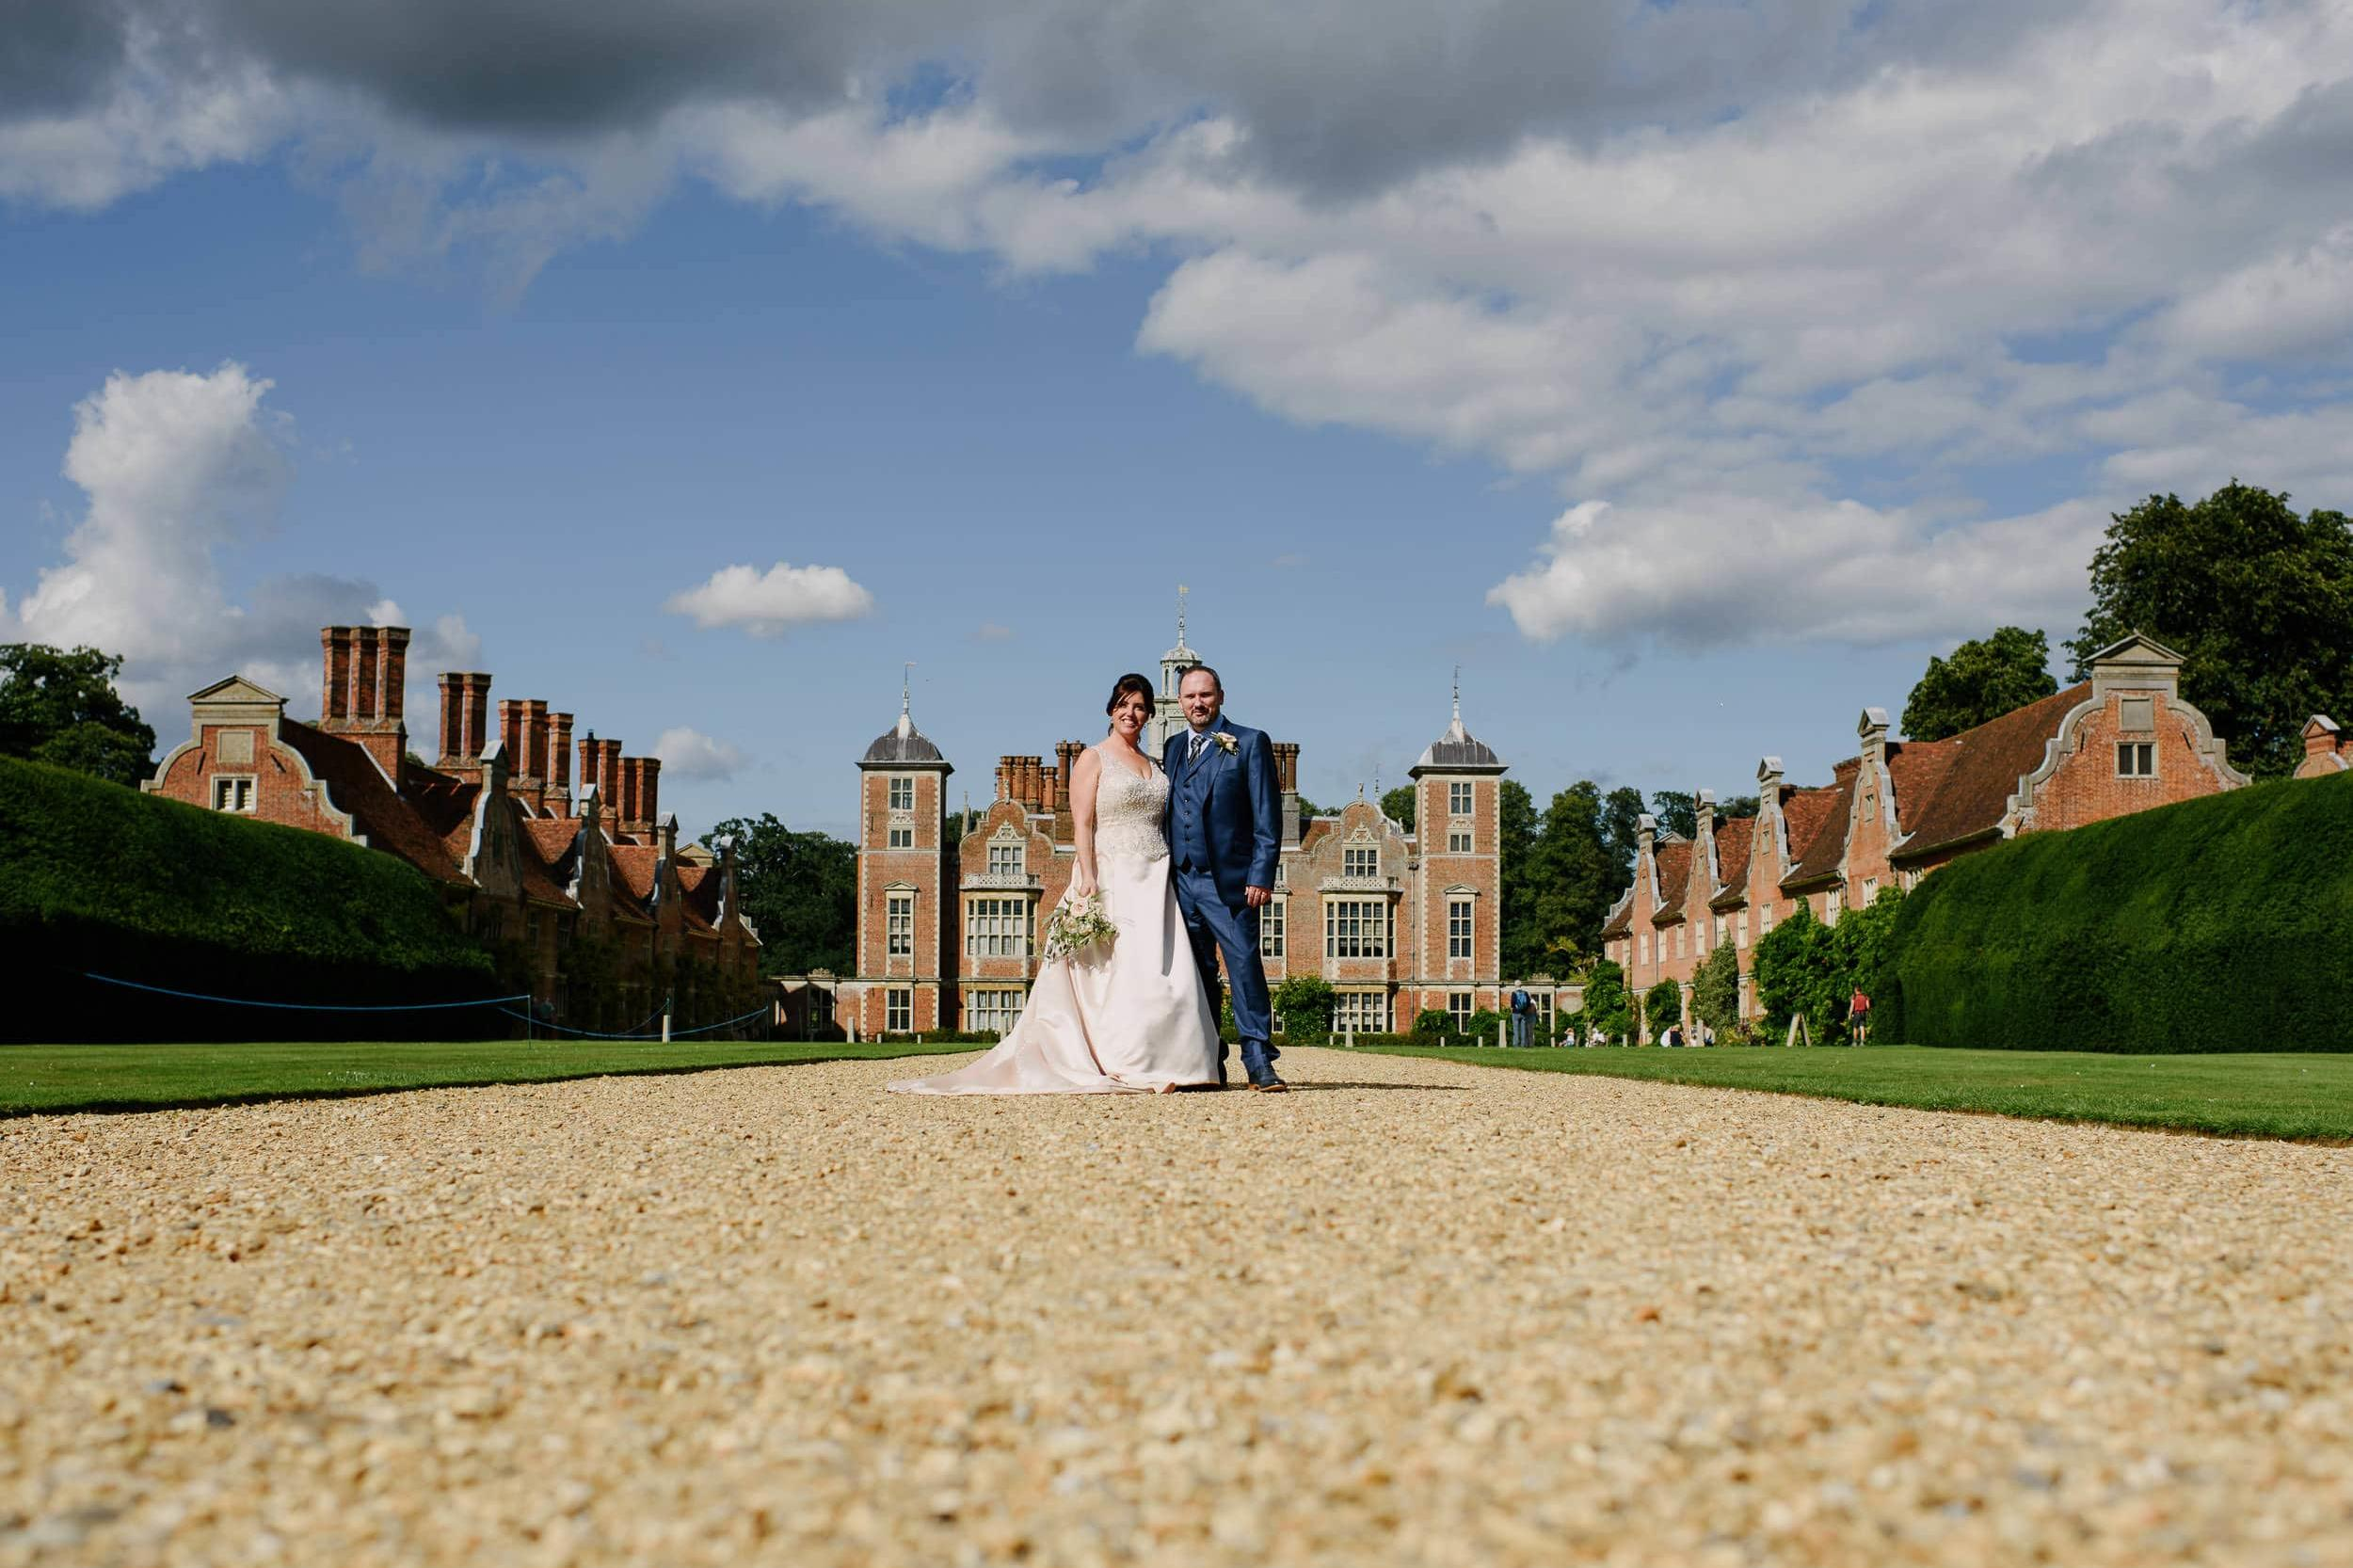 Suzy & Mike - Blickling Hall Wedding 7